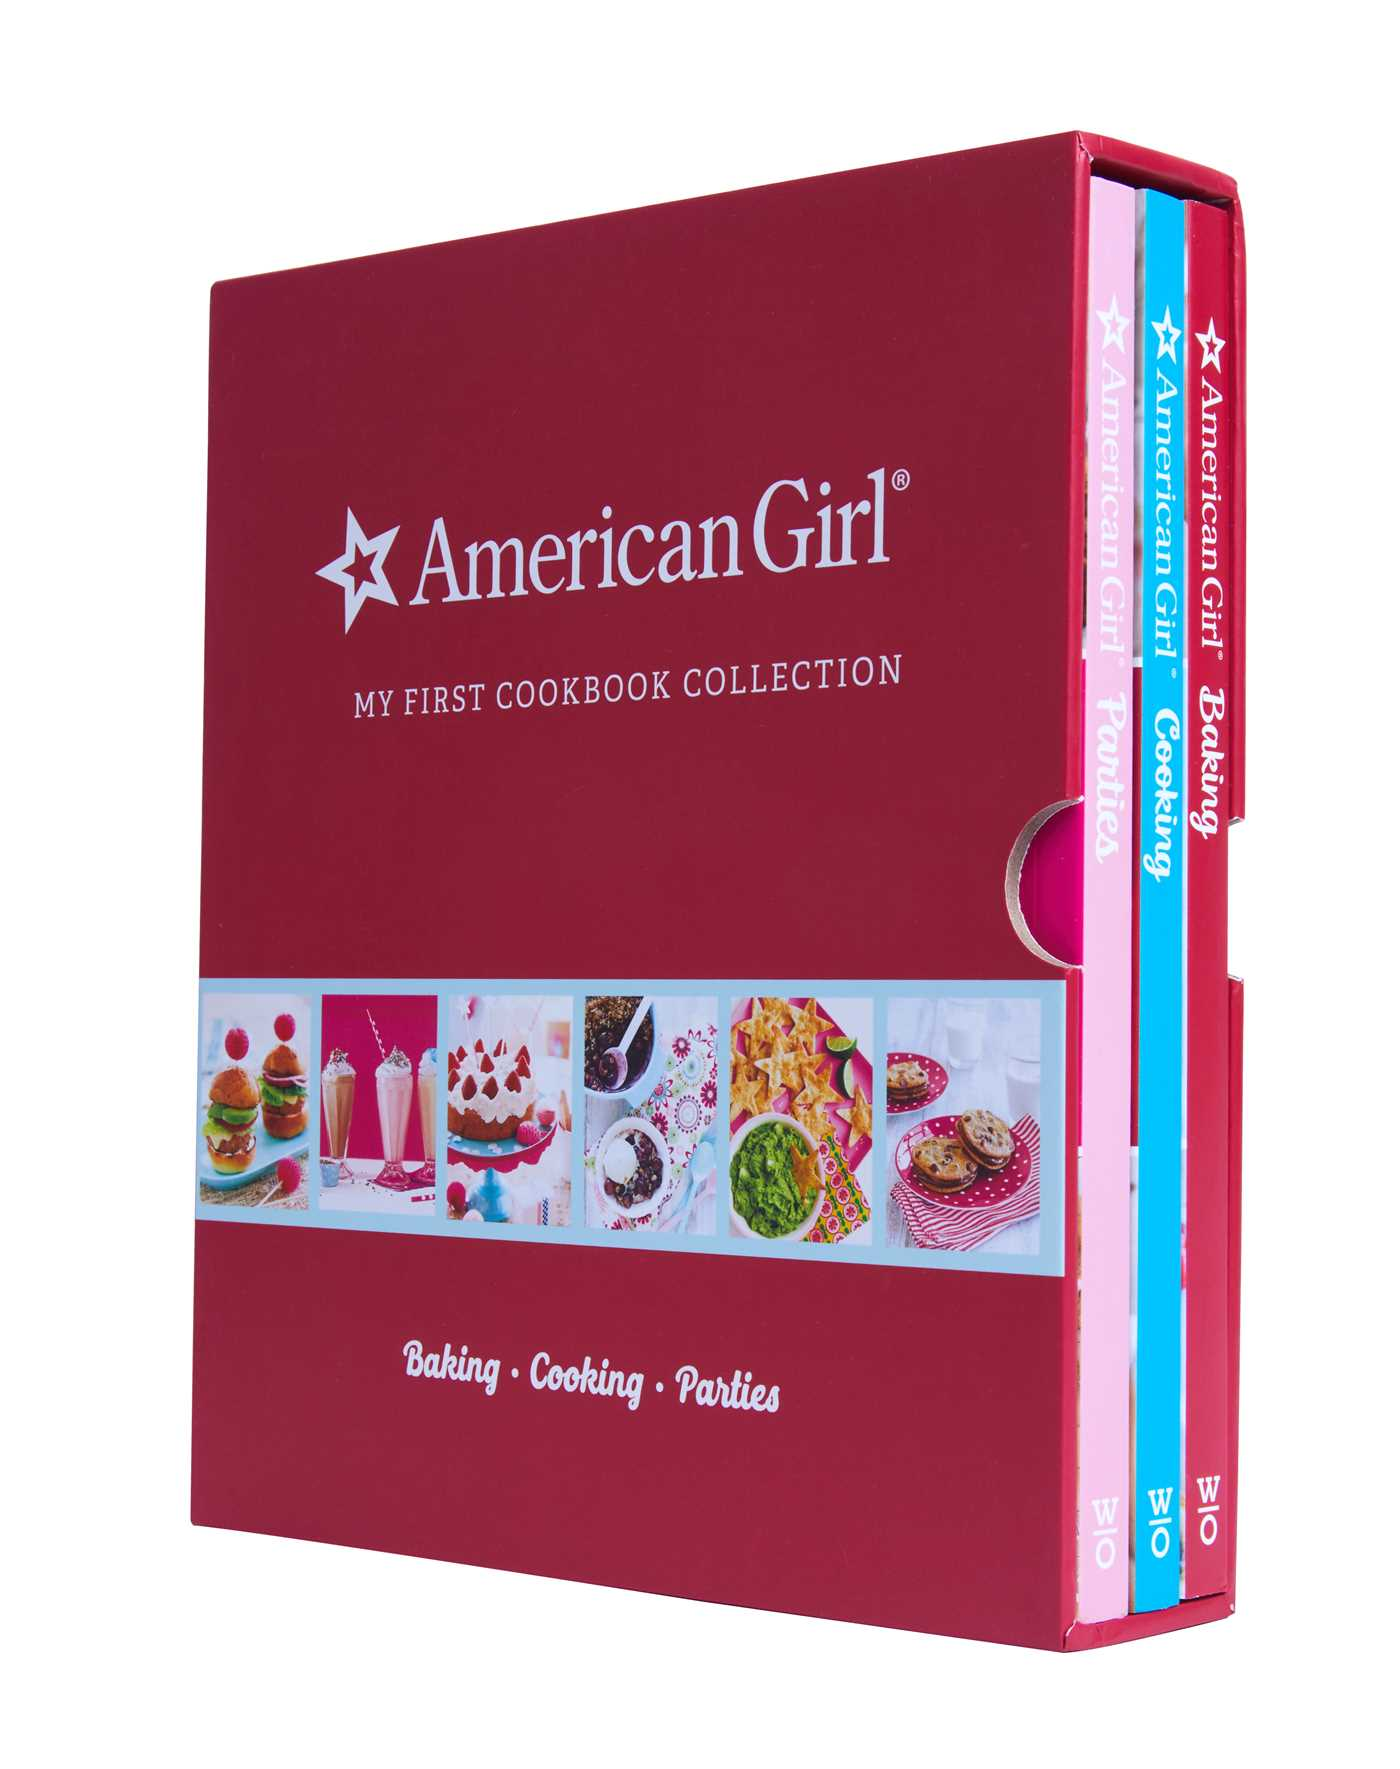 American Girl My First Cookbook Collection (Baking, Cookies, Parties)